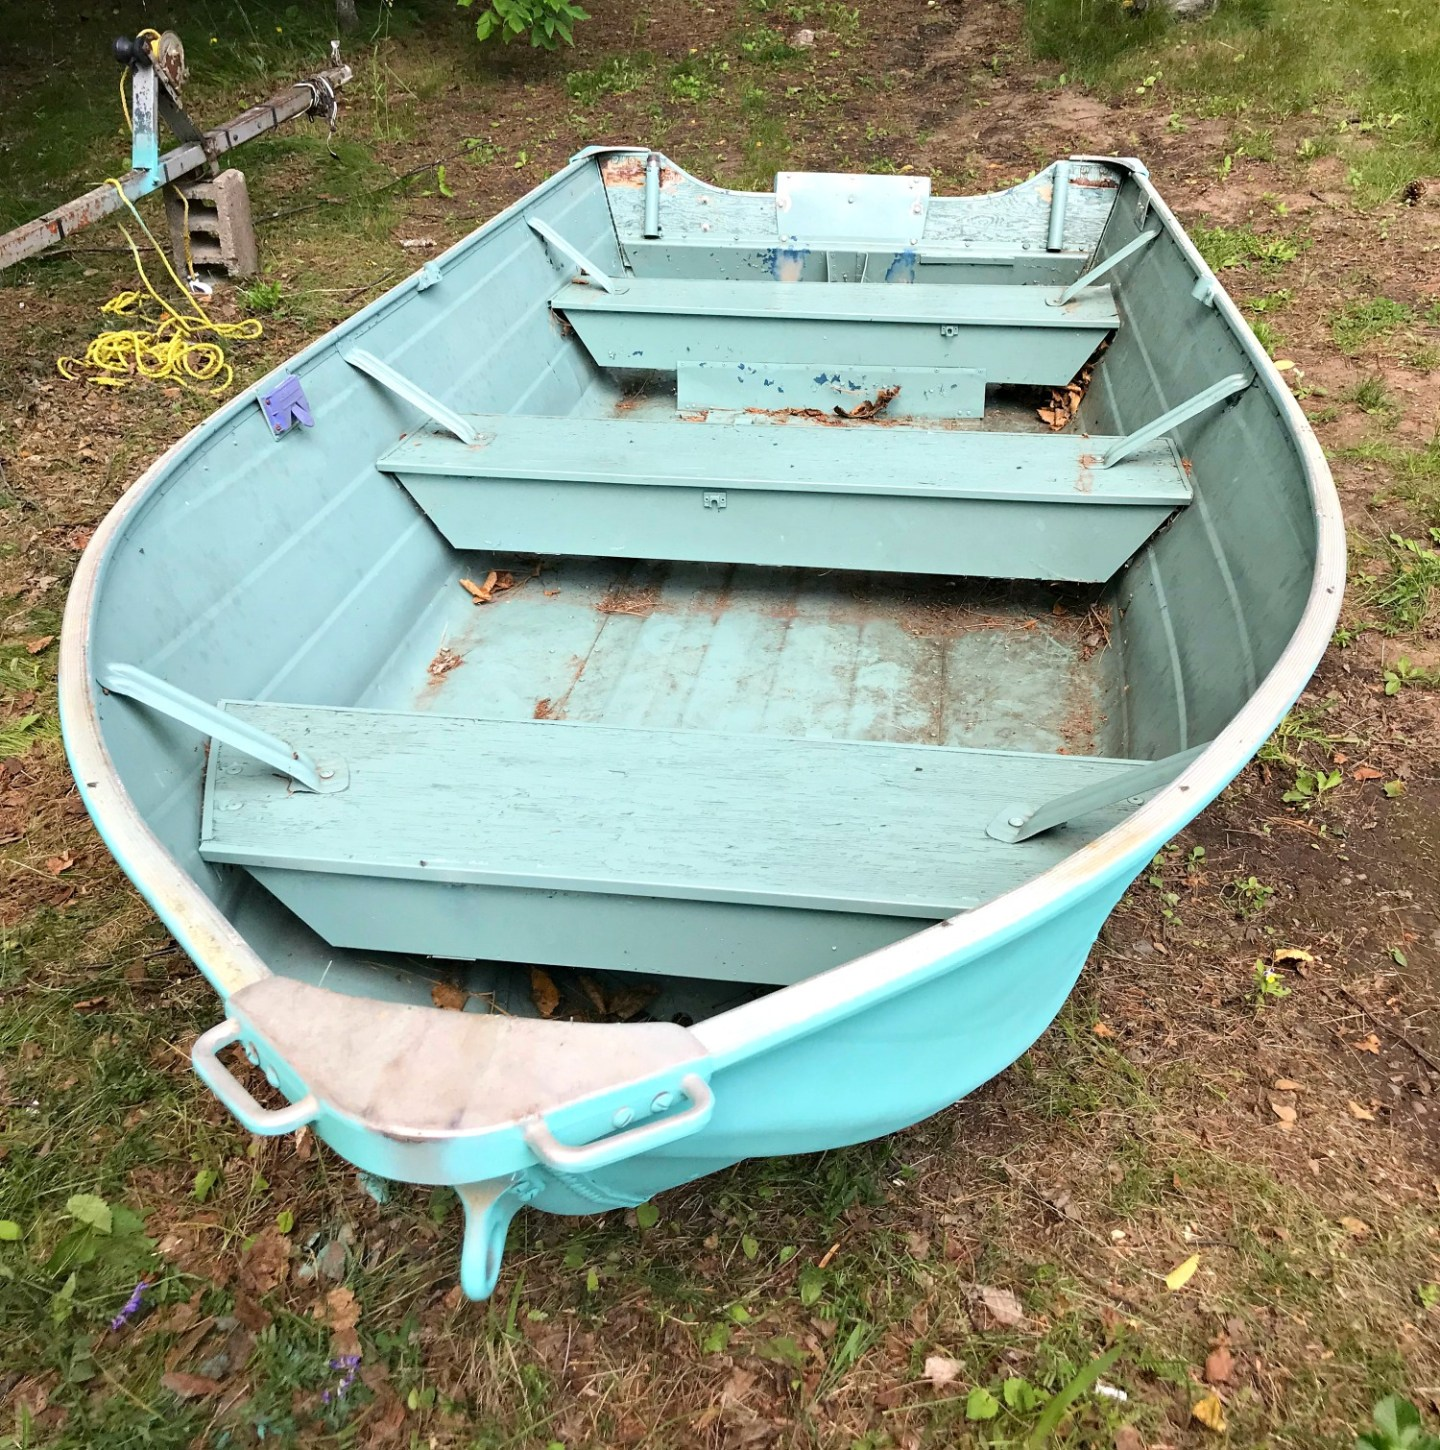 I Spray Painted an Aluminum Boat! Turquoise Boat Makeover. Tips for Painting Metal. (Sponsored by Rust-Oleum)